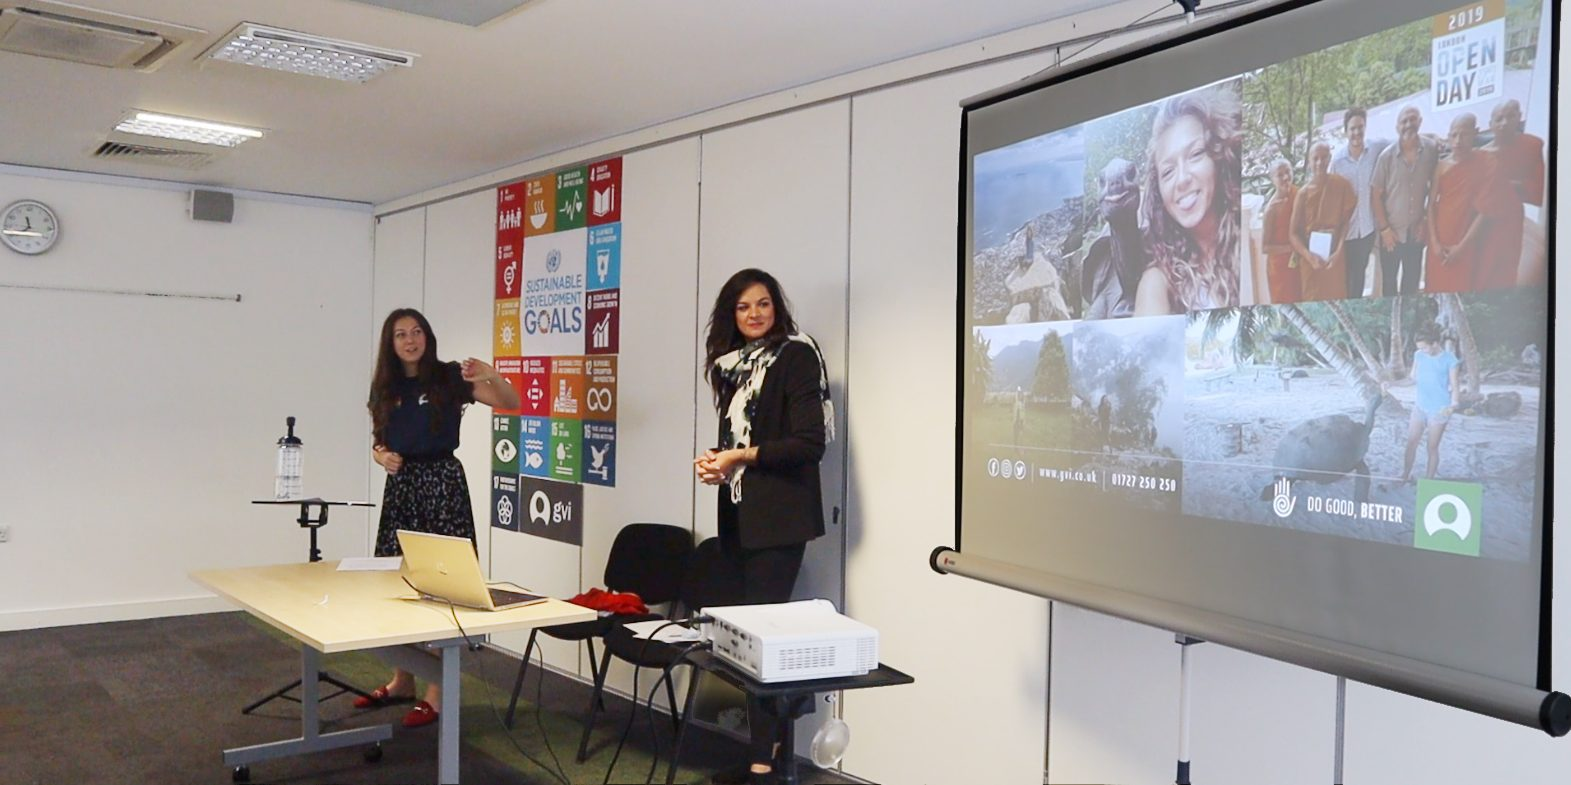 GVI staff give a presentation on the organisation's programs. Teens looking to kickstart their own volunteer projects should be willing to do similar presentations to raise funds and awareness.